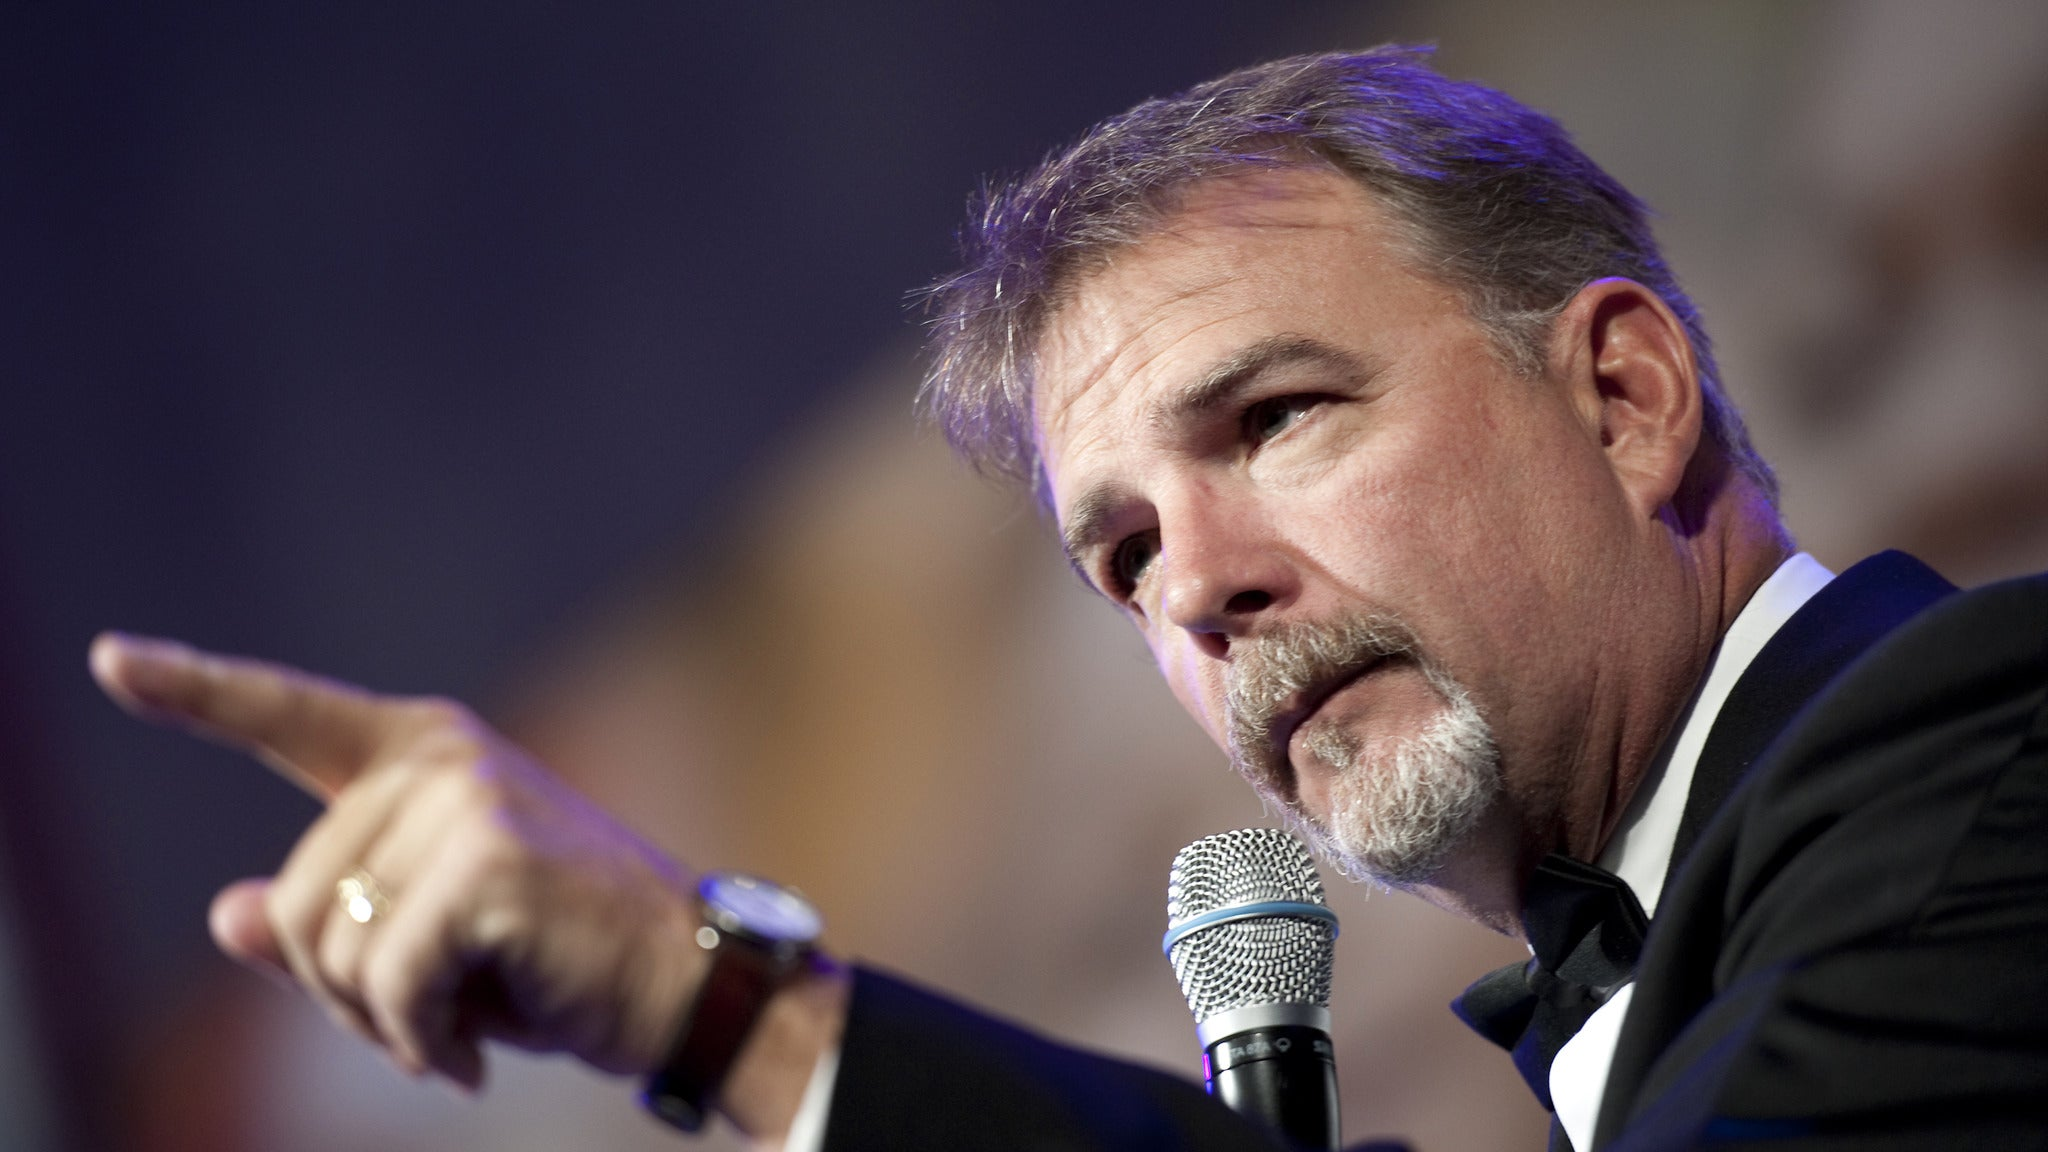 Bill Engvall at Morrison Center for the Performing Arts